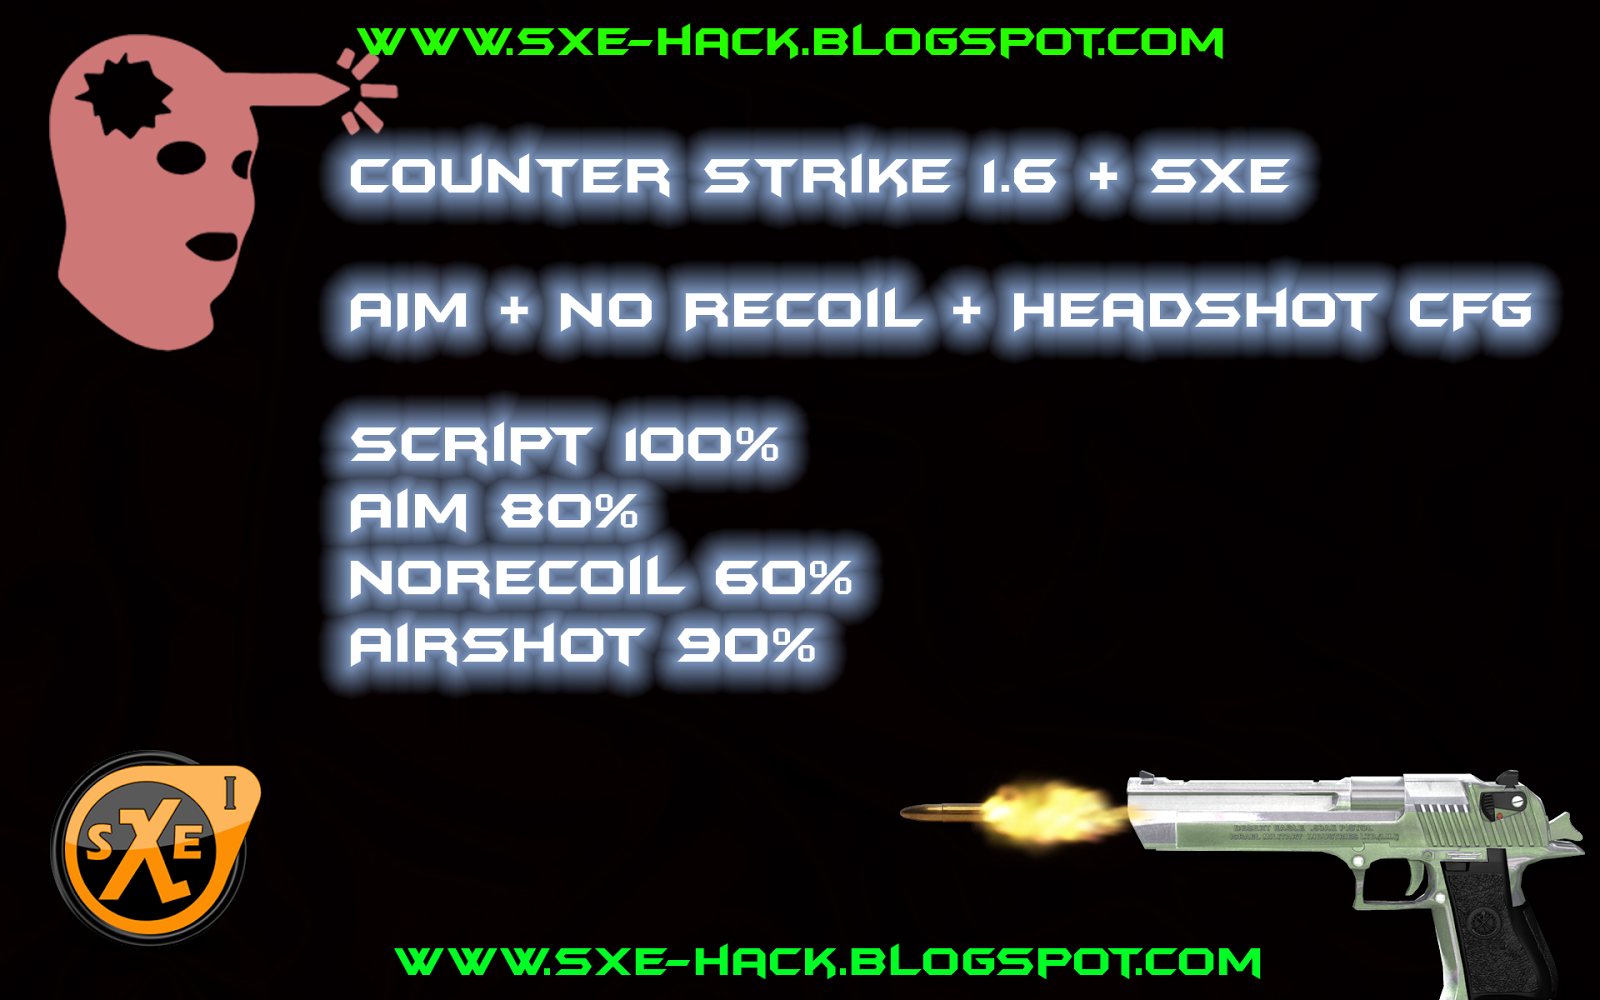 Counter Strike 1.6 sXe Aim + NoRecoil + Headshot Private CFG Download ~ Shark Pro